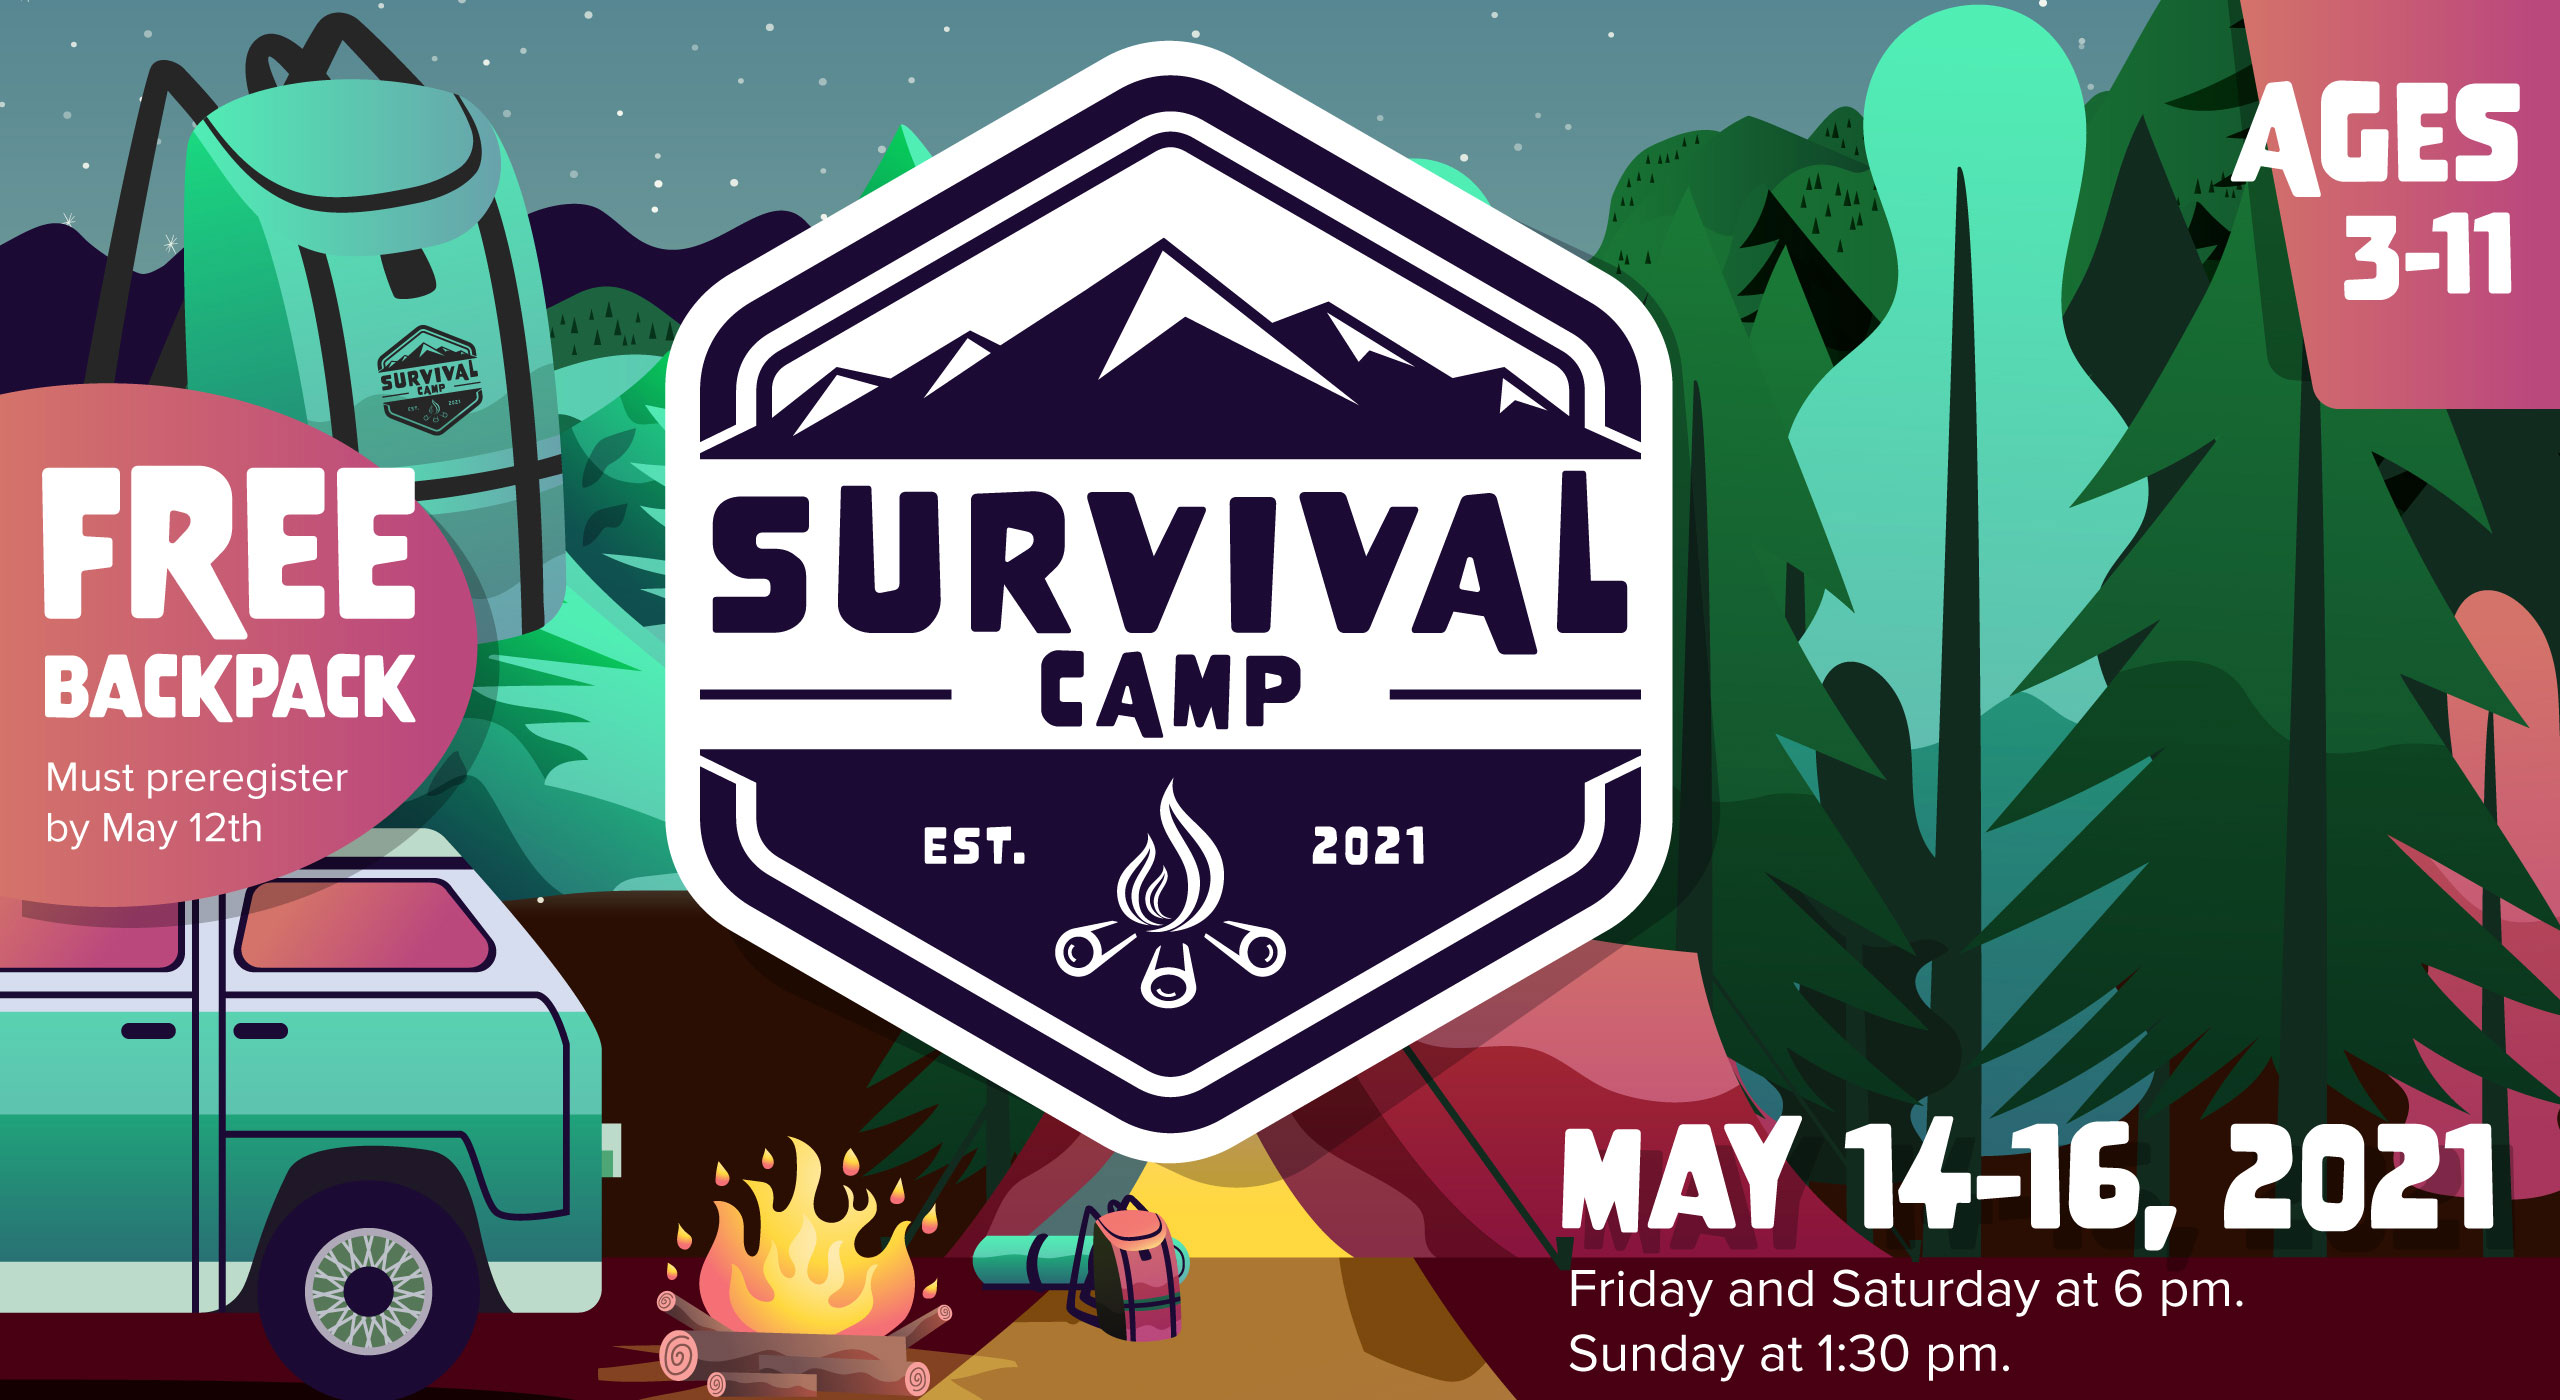 Survival Camp at Christ Community Church The Pentecostals in Henderson, Tennessee